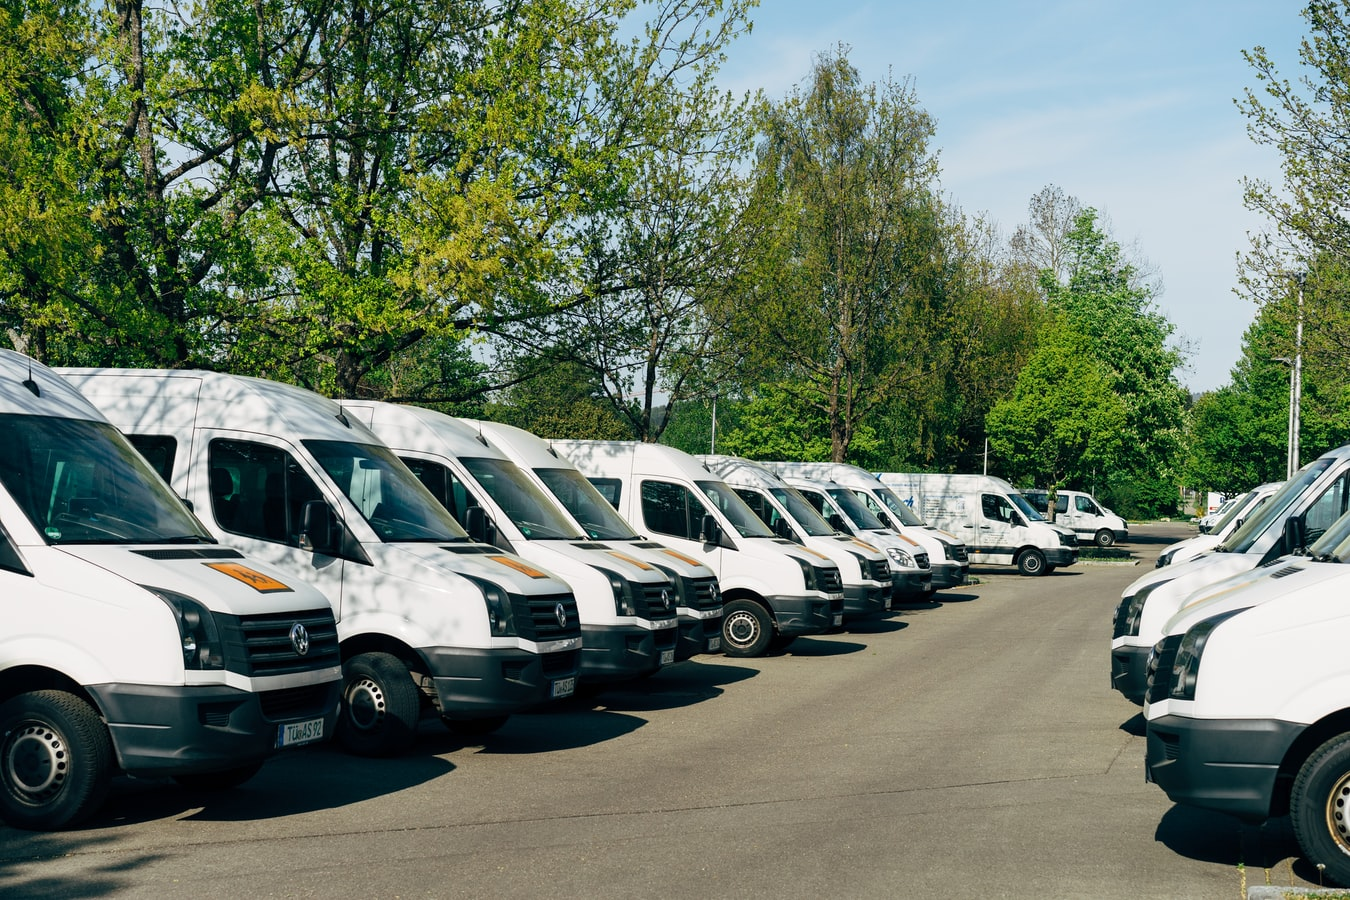 Commercial Vehicle Insurance - What is it?